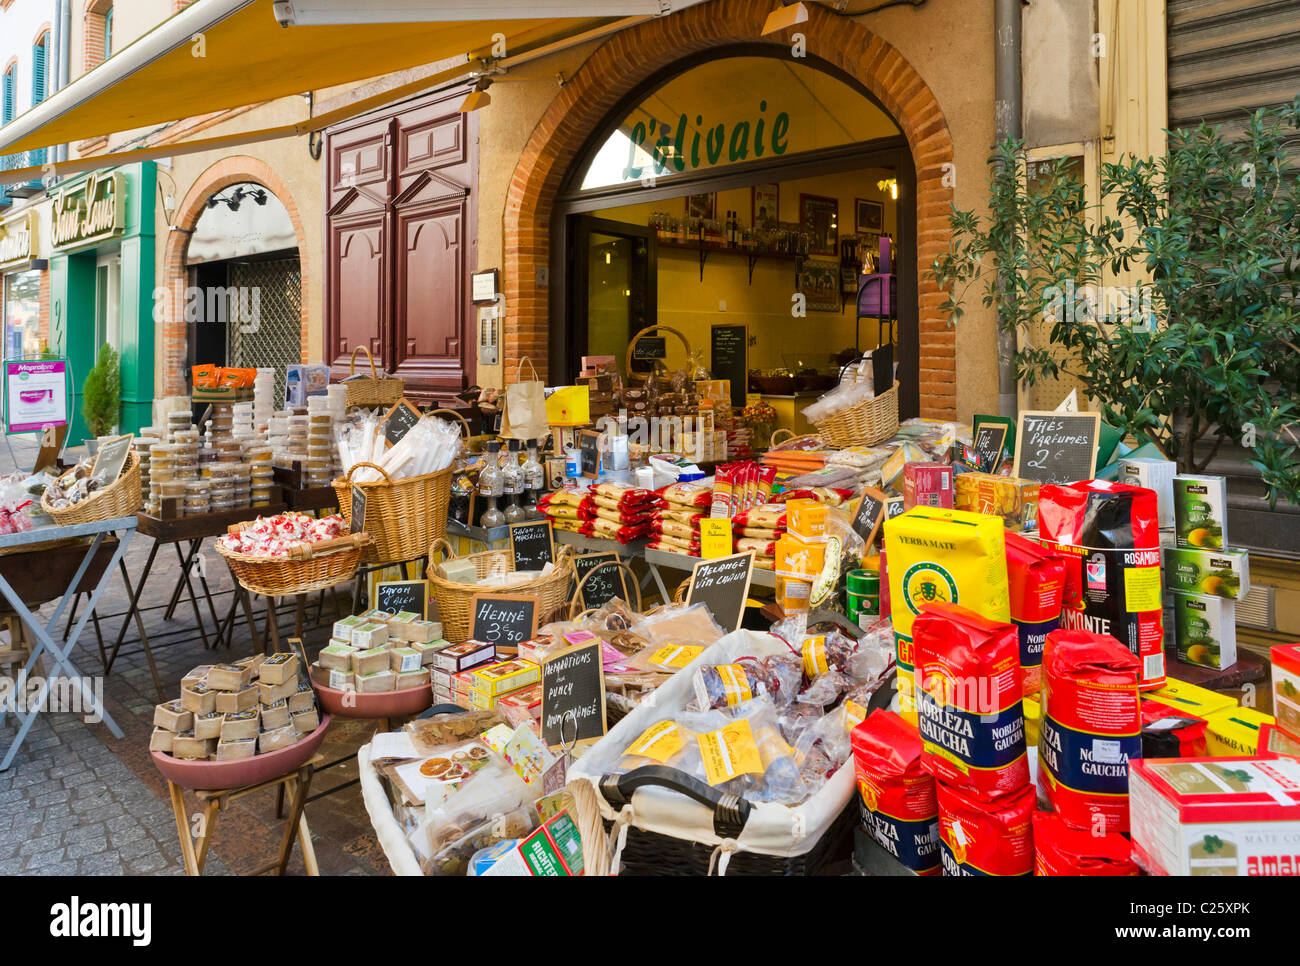 Shop in the old town, Montauban, The Lot, France - Stock Image